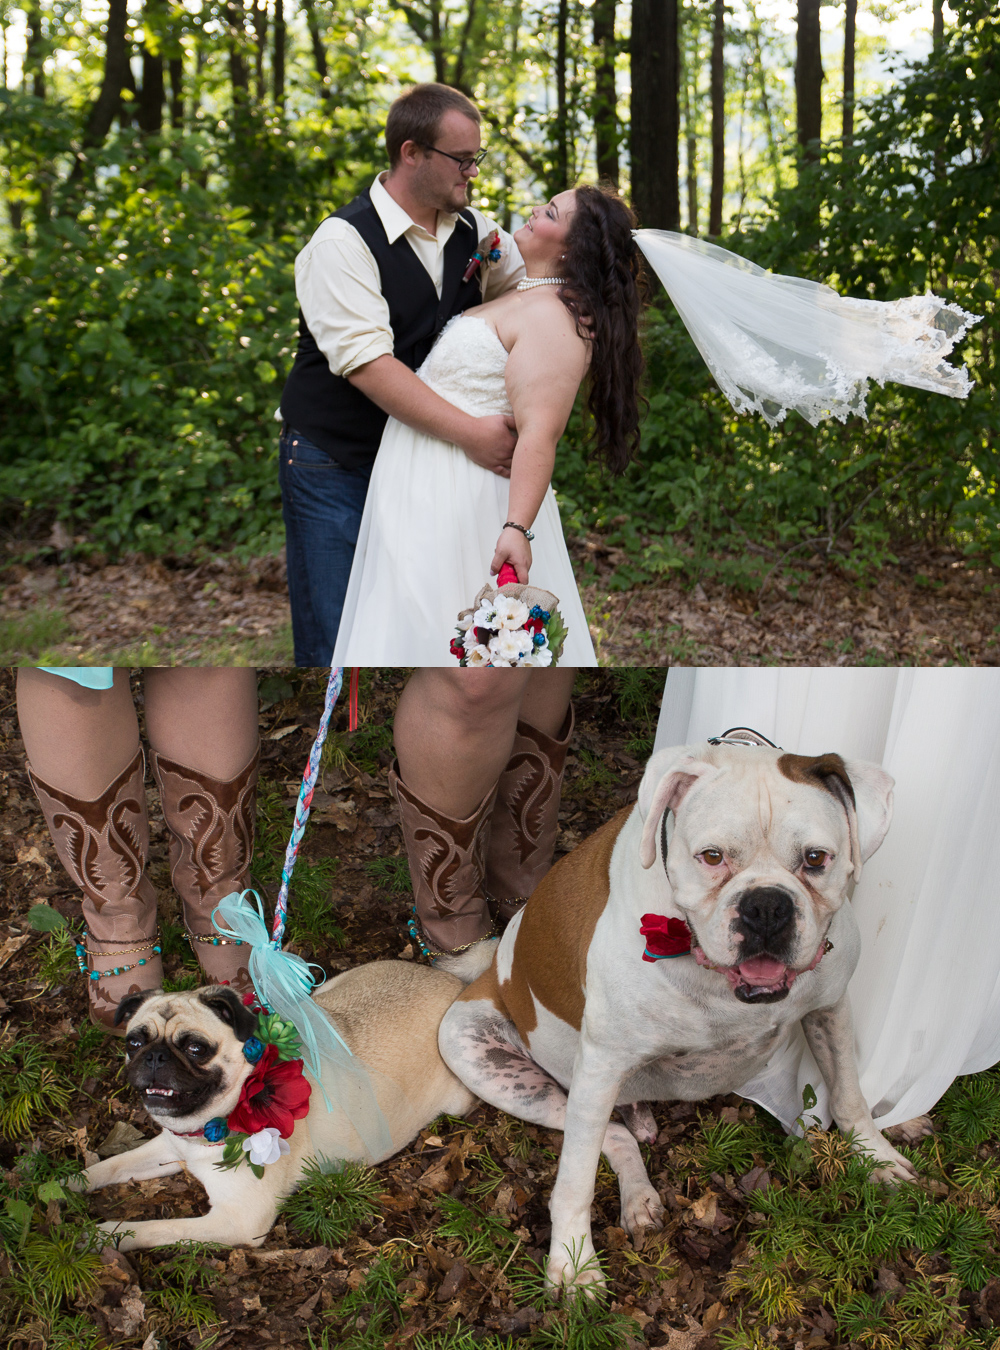 Not only were the horses a huge part of they day, so were the brides Boxer Hero, and the maid of honors Pug, Piccadilly. Cutest ring bearer and flower girl ever.